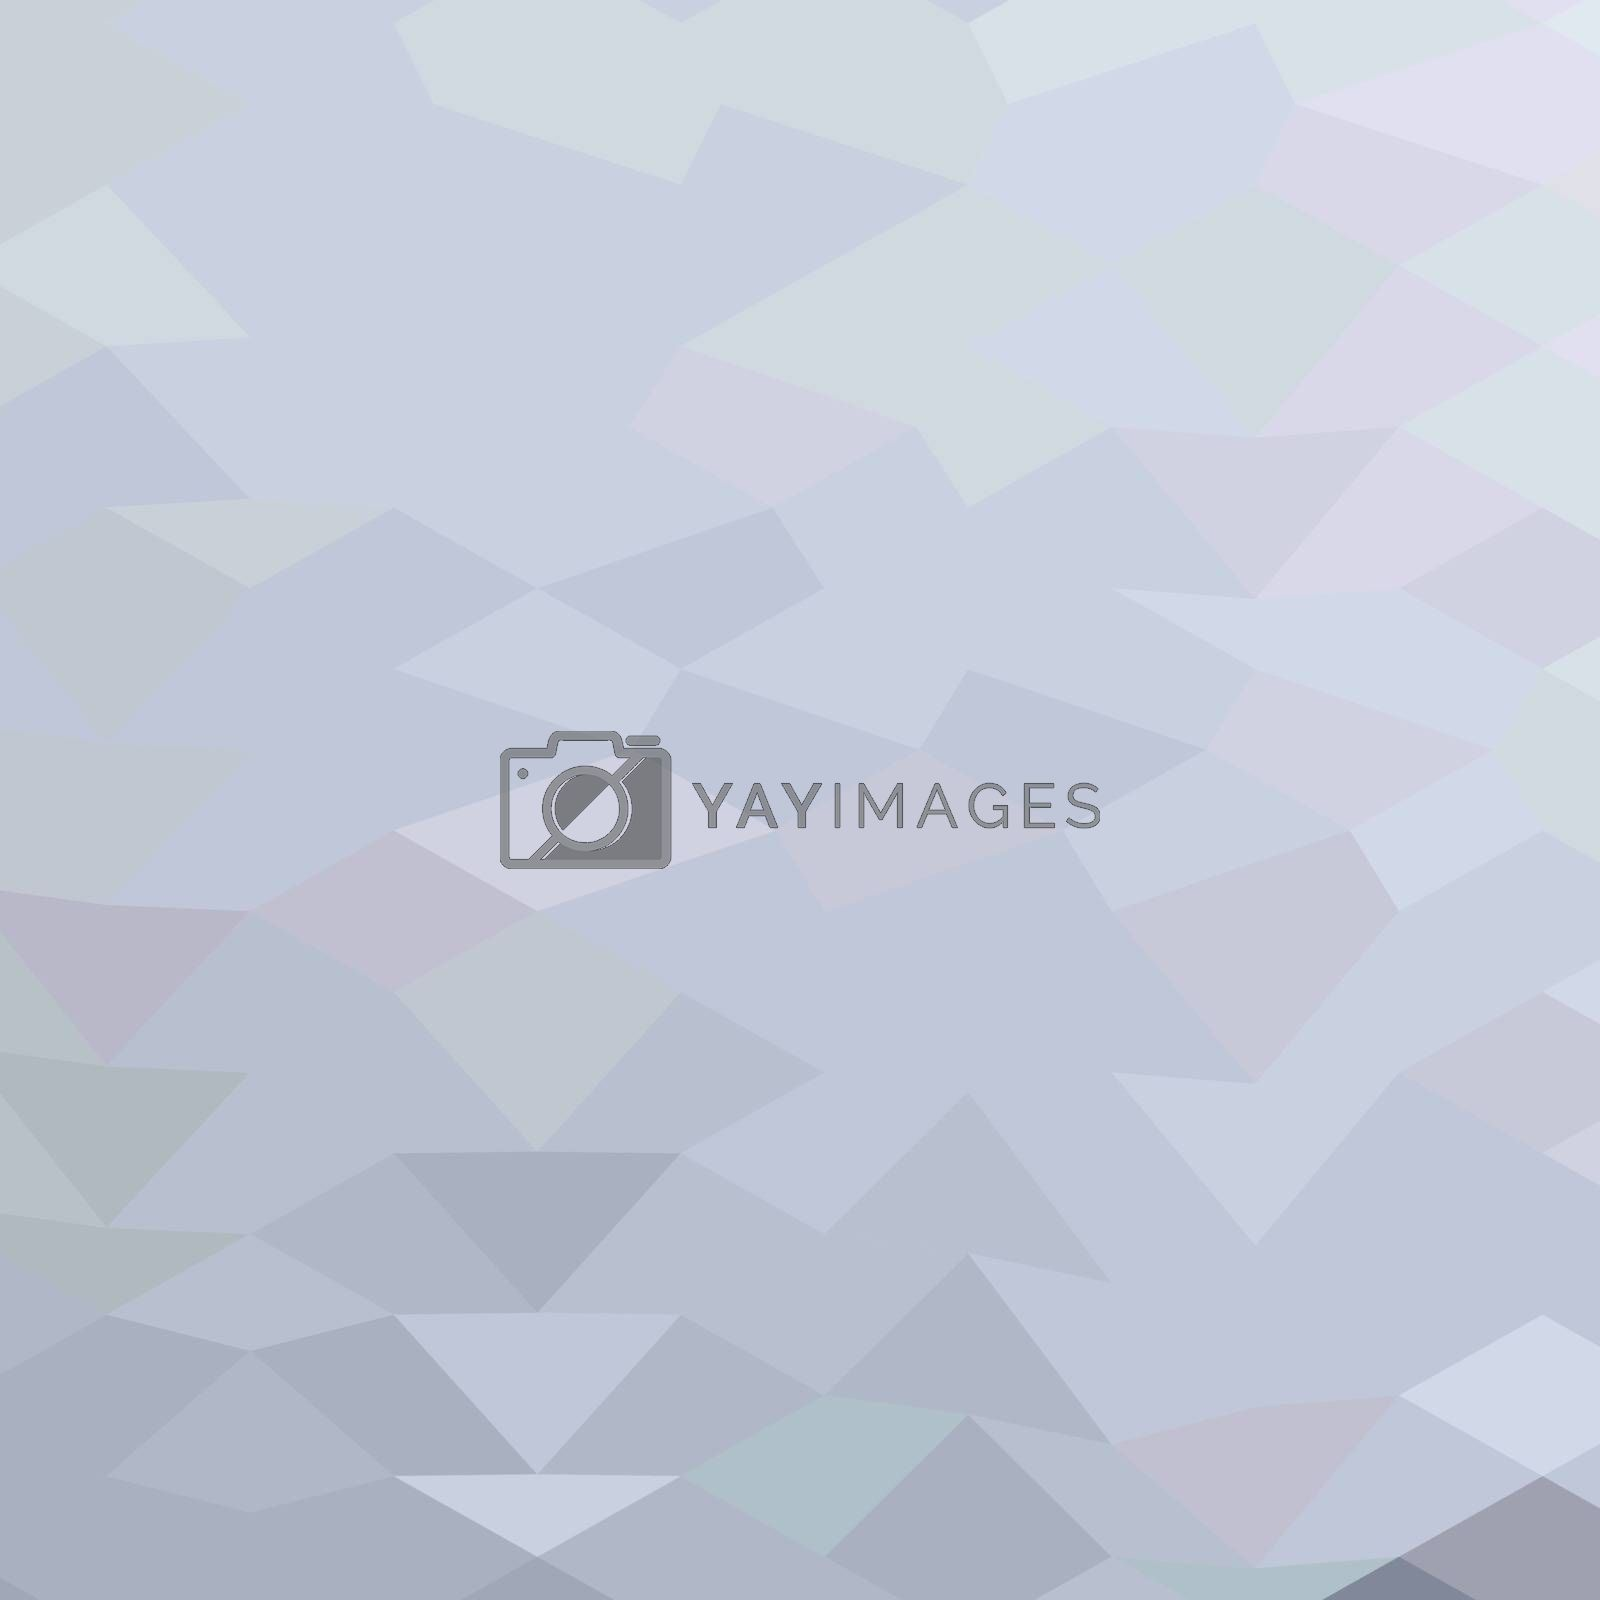 Low polygon style illustration of a grey abstract background.